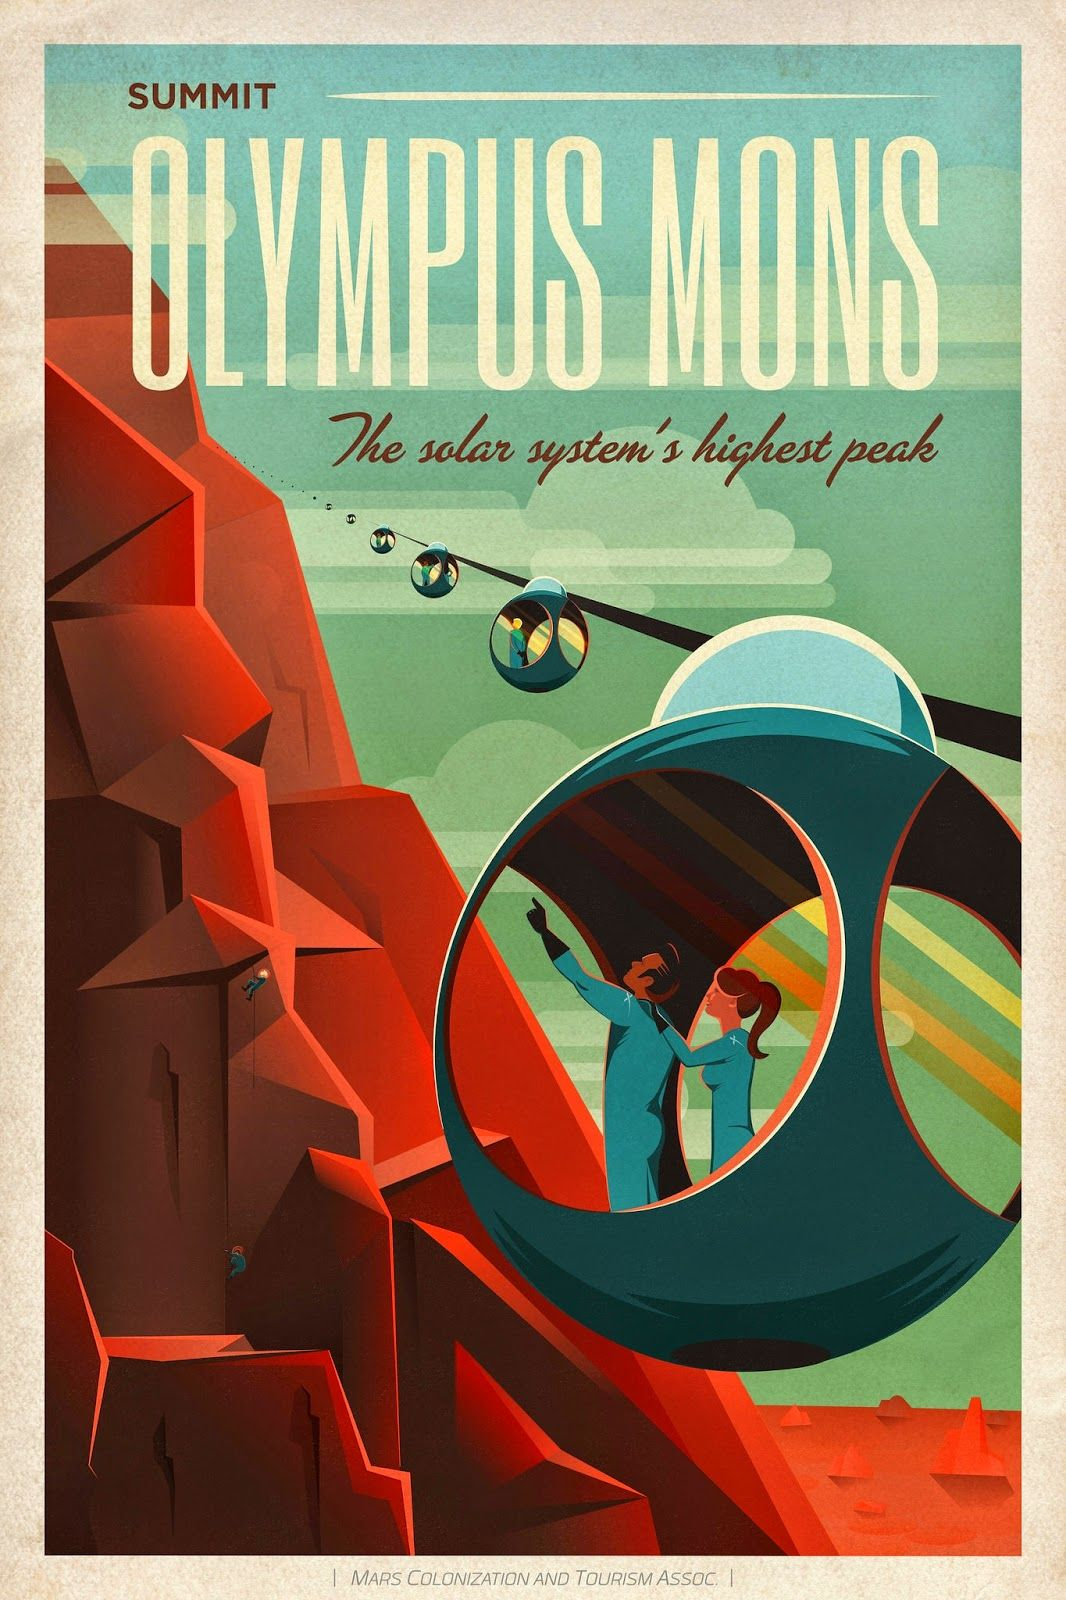 Retro Nasa Posters. Cool Pics In 2019 Vintage Space